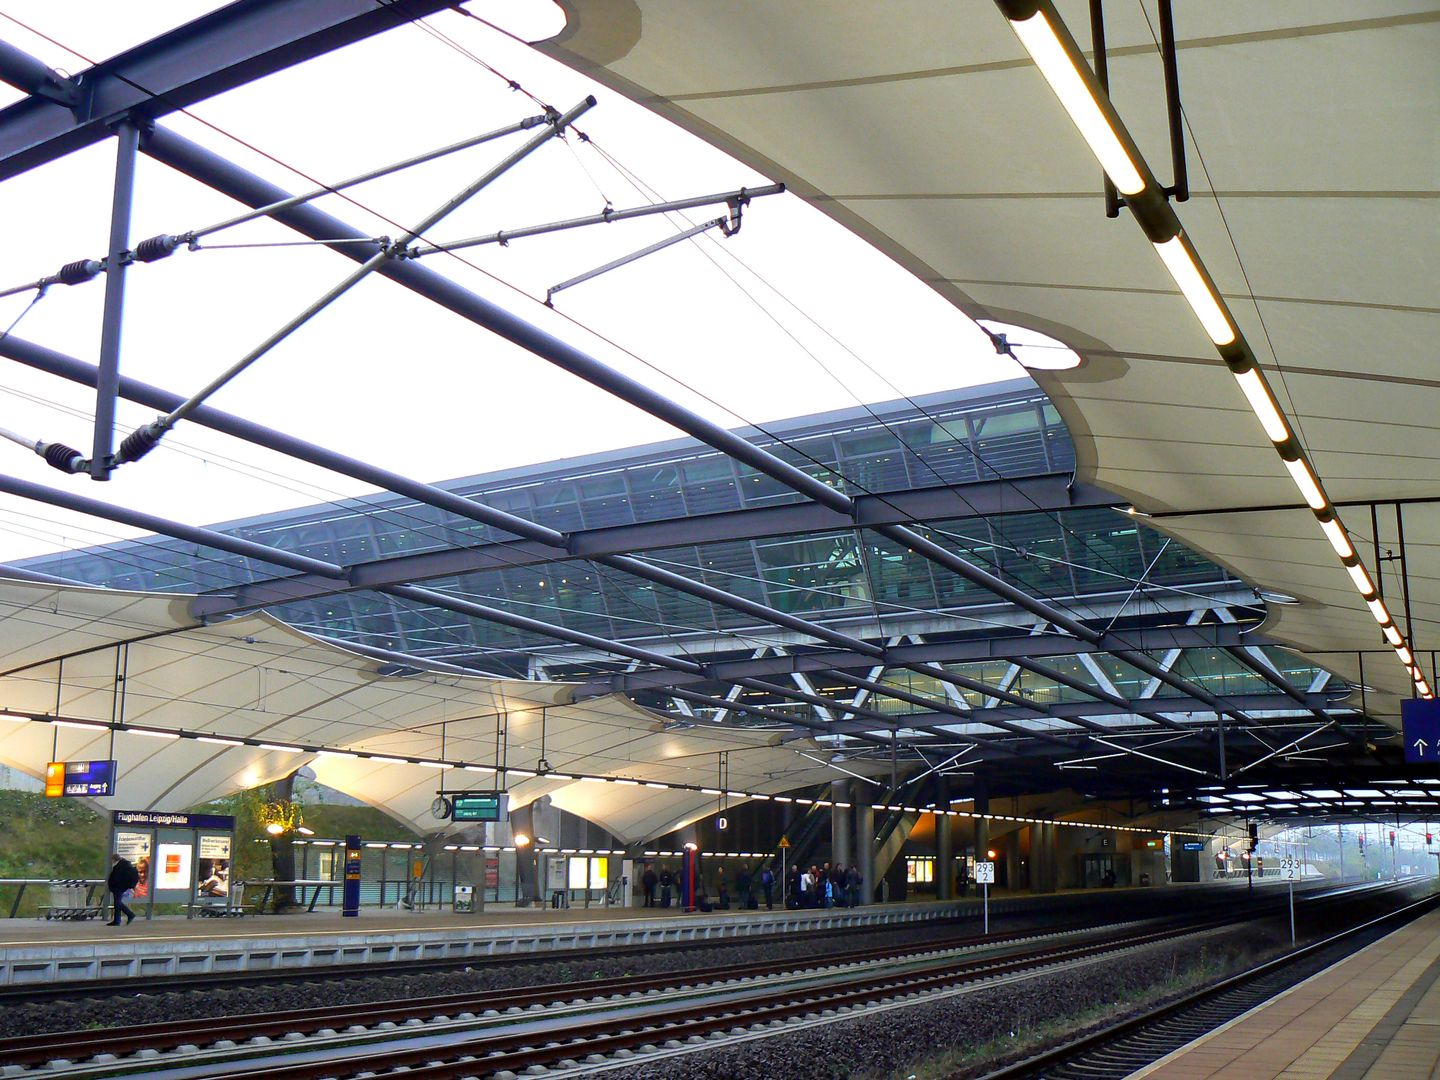 Station Airport Halle Leipzig